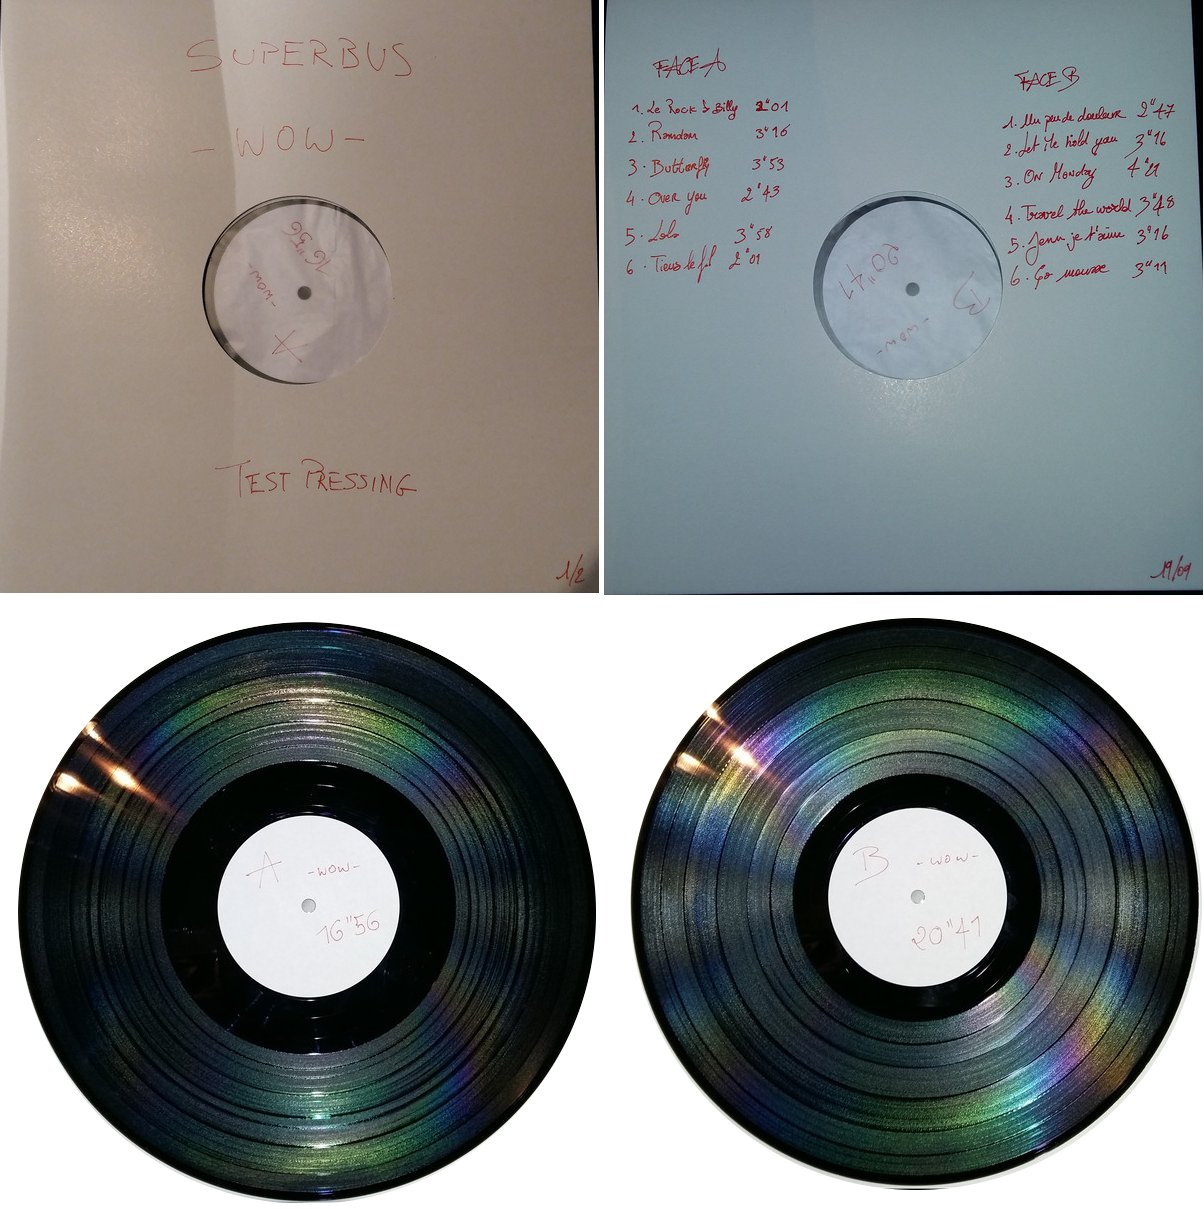 TEST PRESSING LP WOW